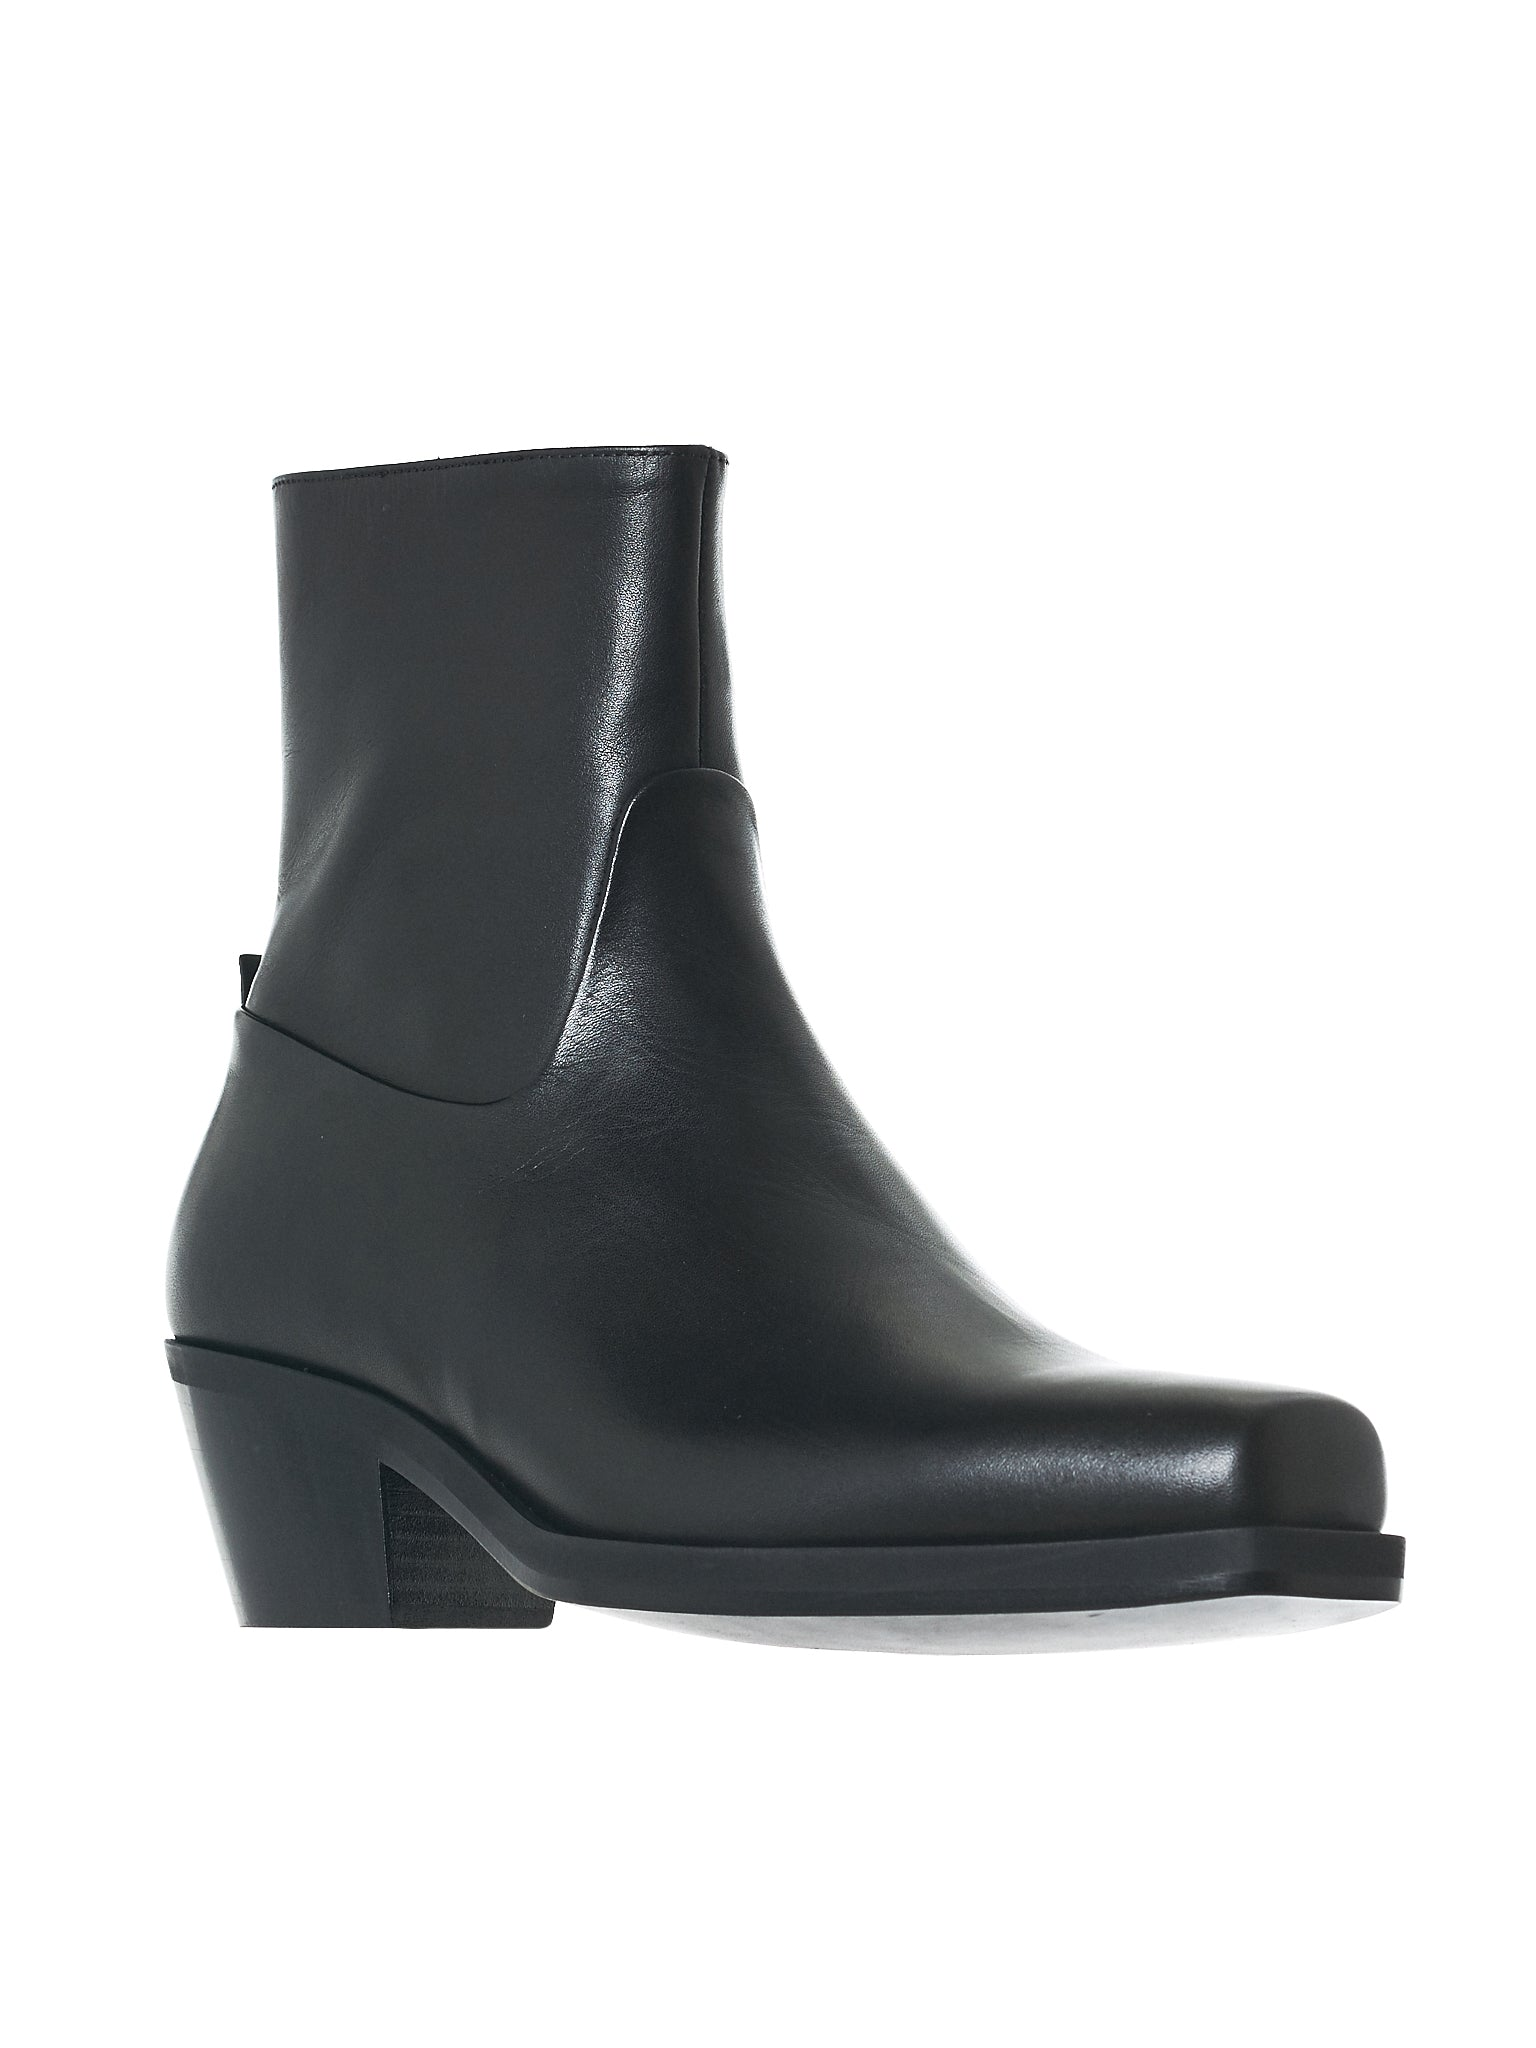 MISBHV Leather Boots - Hlorenzo Side